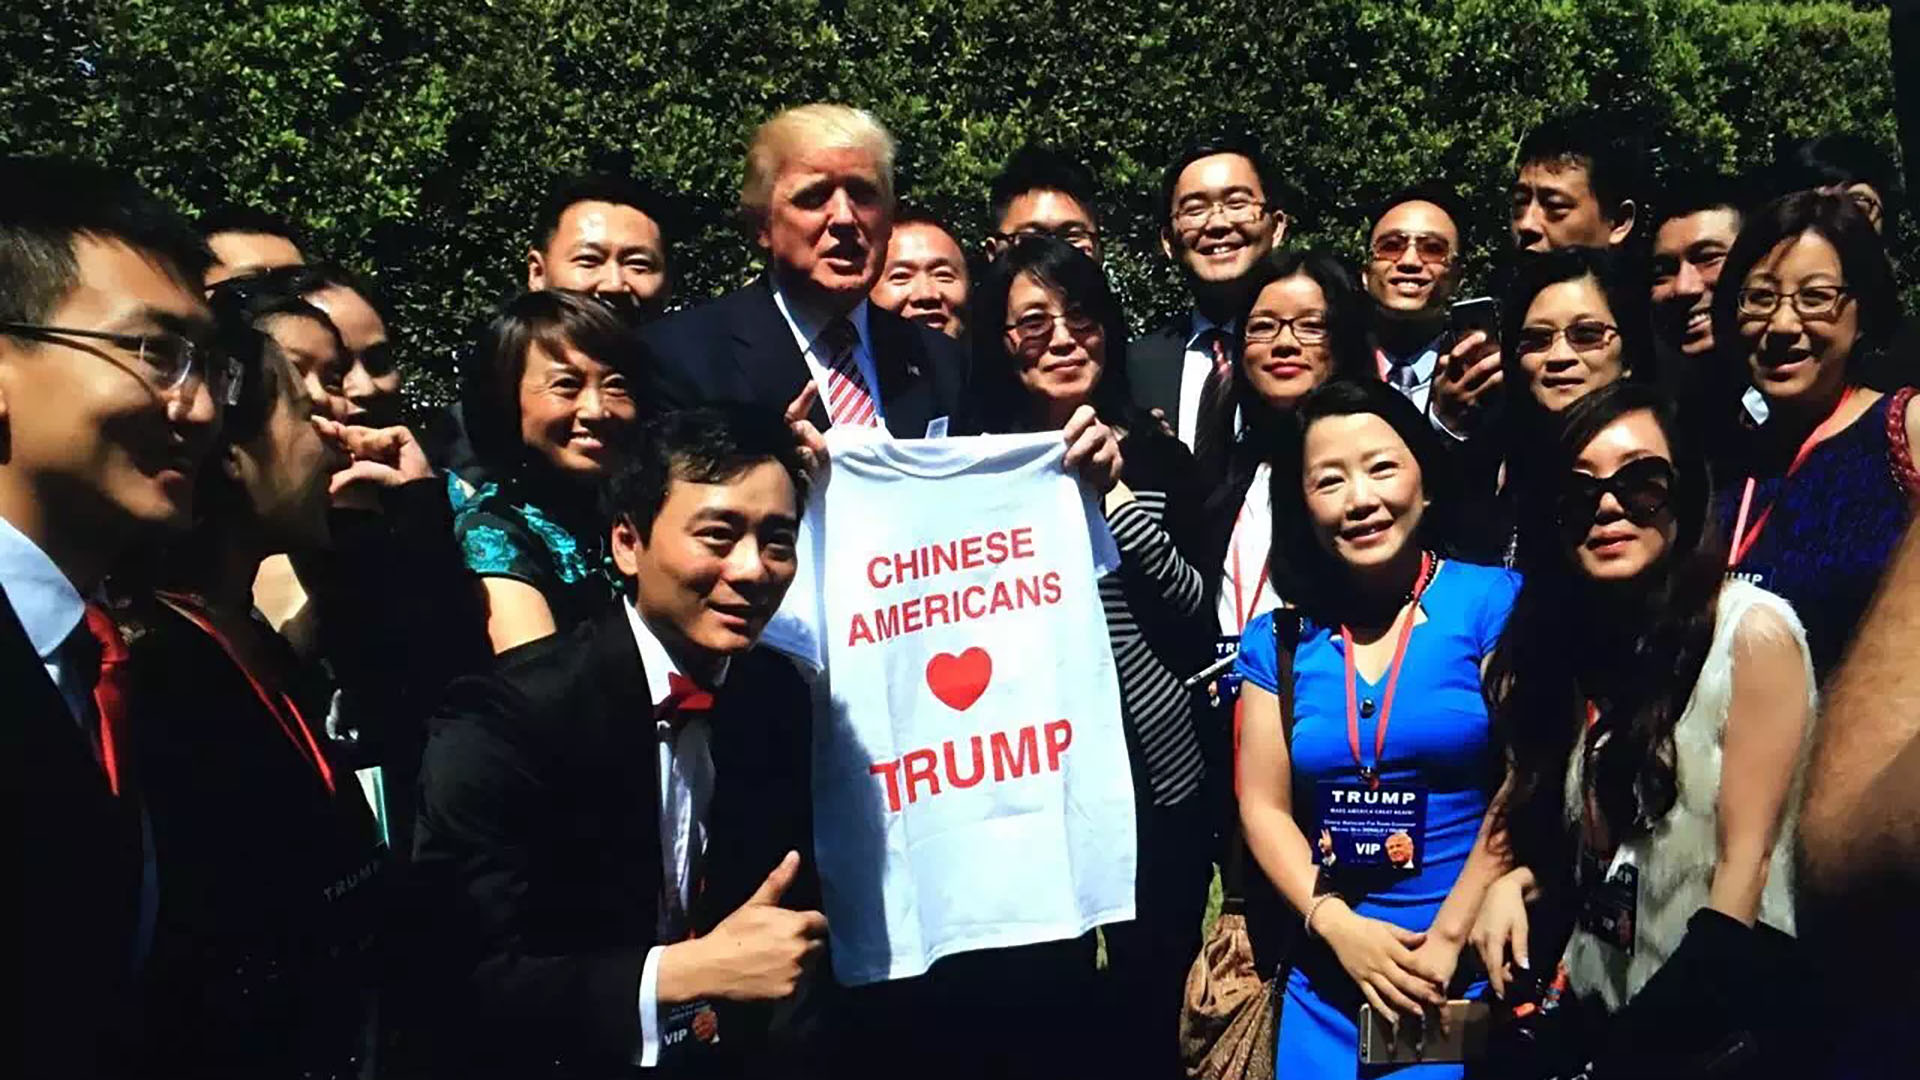 Meet some of the Chinese Americans voting for Trump